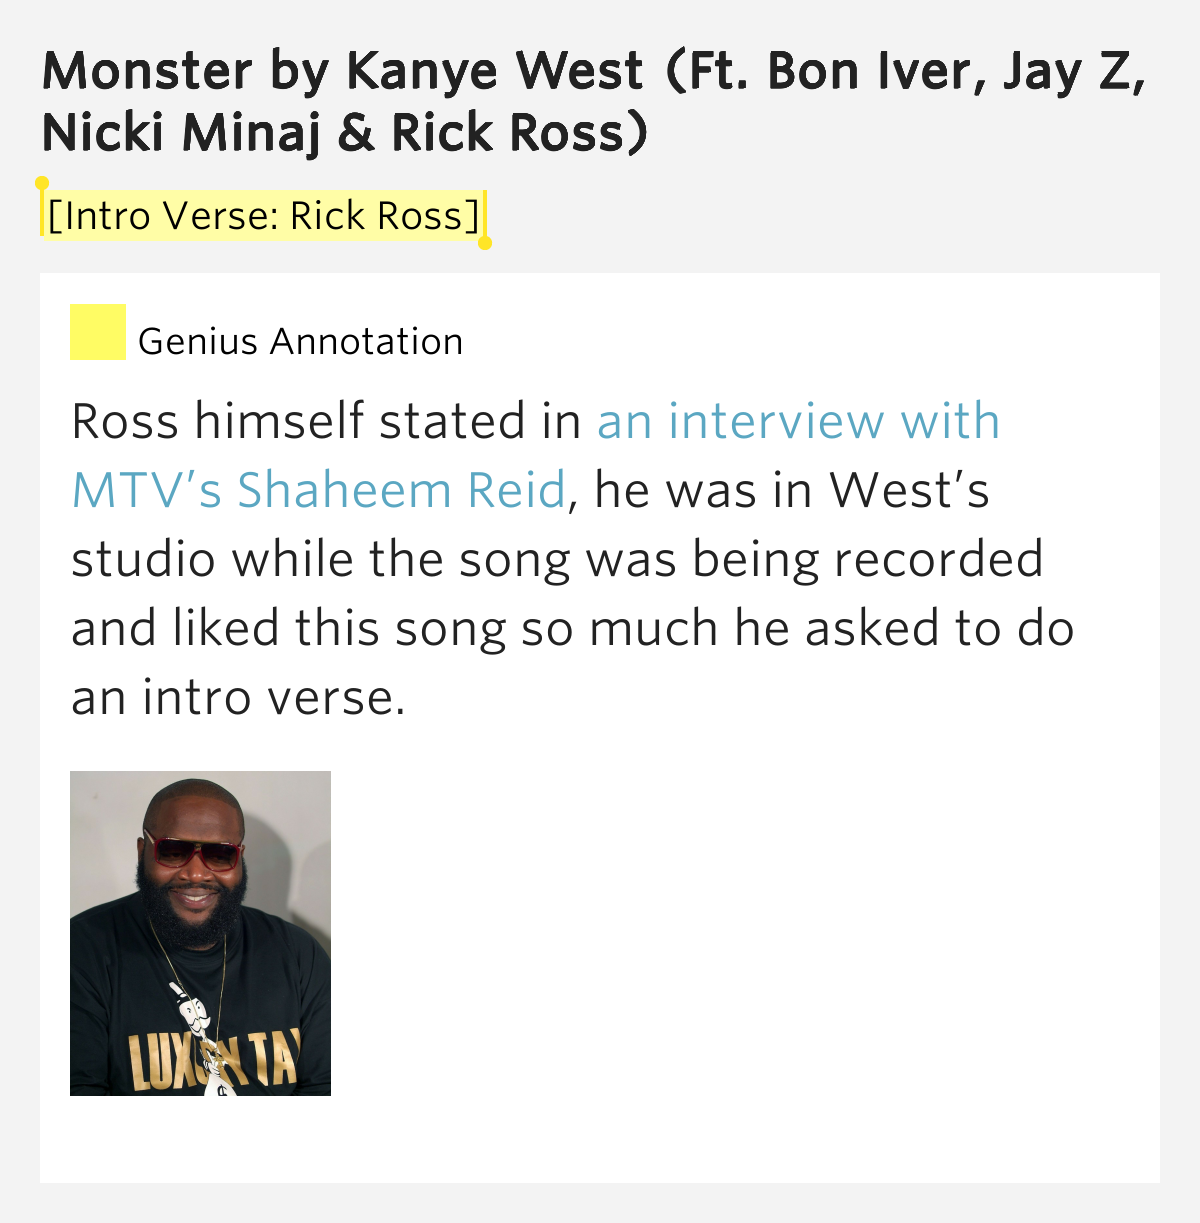 kanye west monster feat nicki minaj rick ross iver